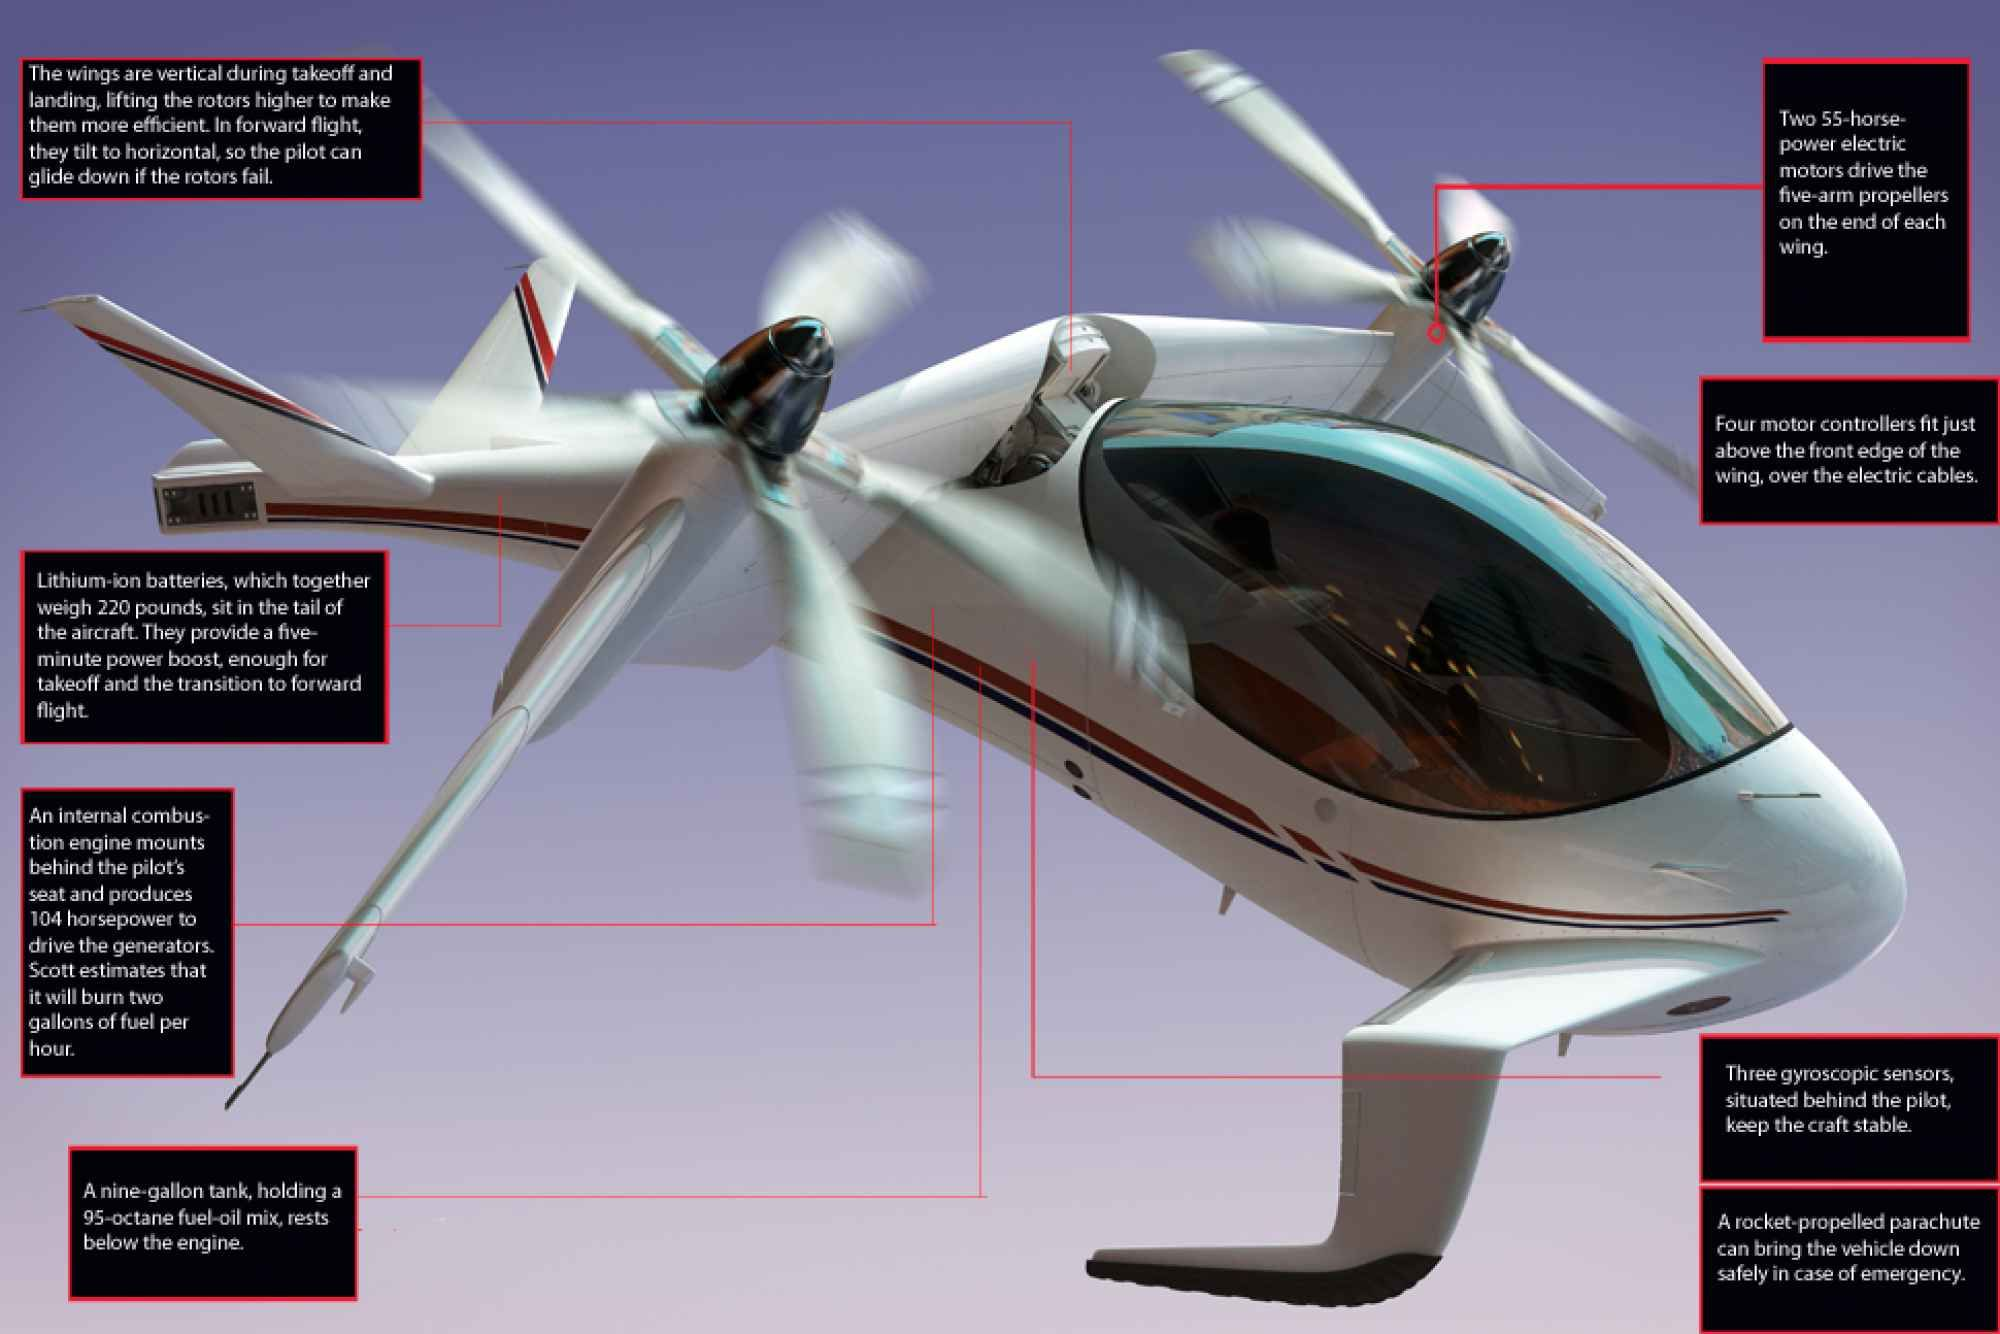 Falx Air Hybrid Tilt Rotor Chopper Aircraft Flying Vehicles Aircraft Design